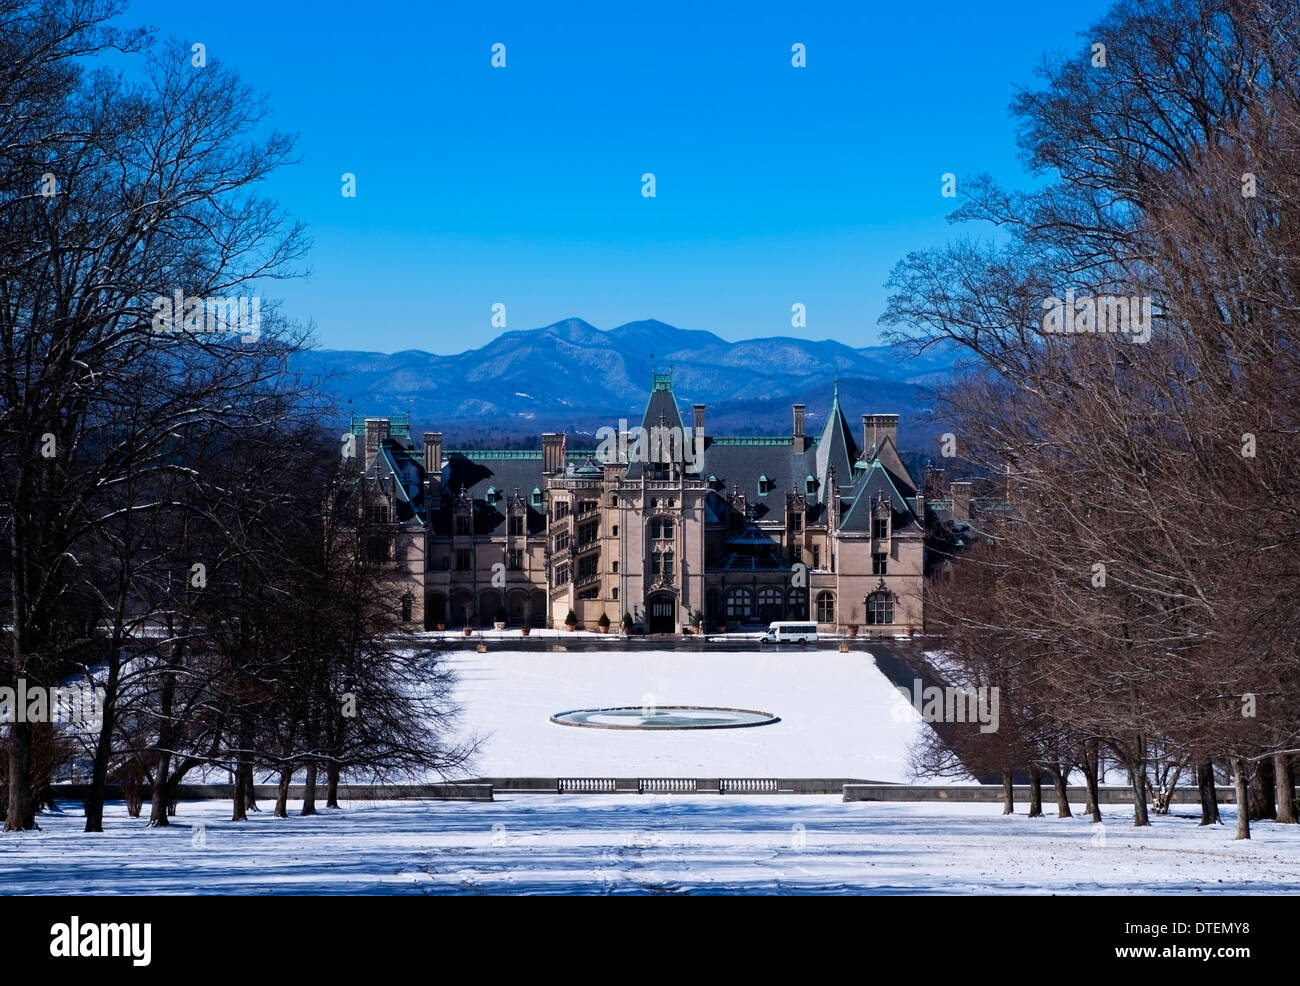 The Biltmore Mansion Front View With Snow On Ground And Mountains In Background Asheville North Carolina